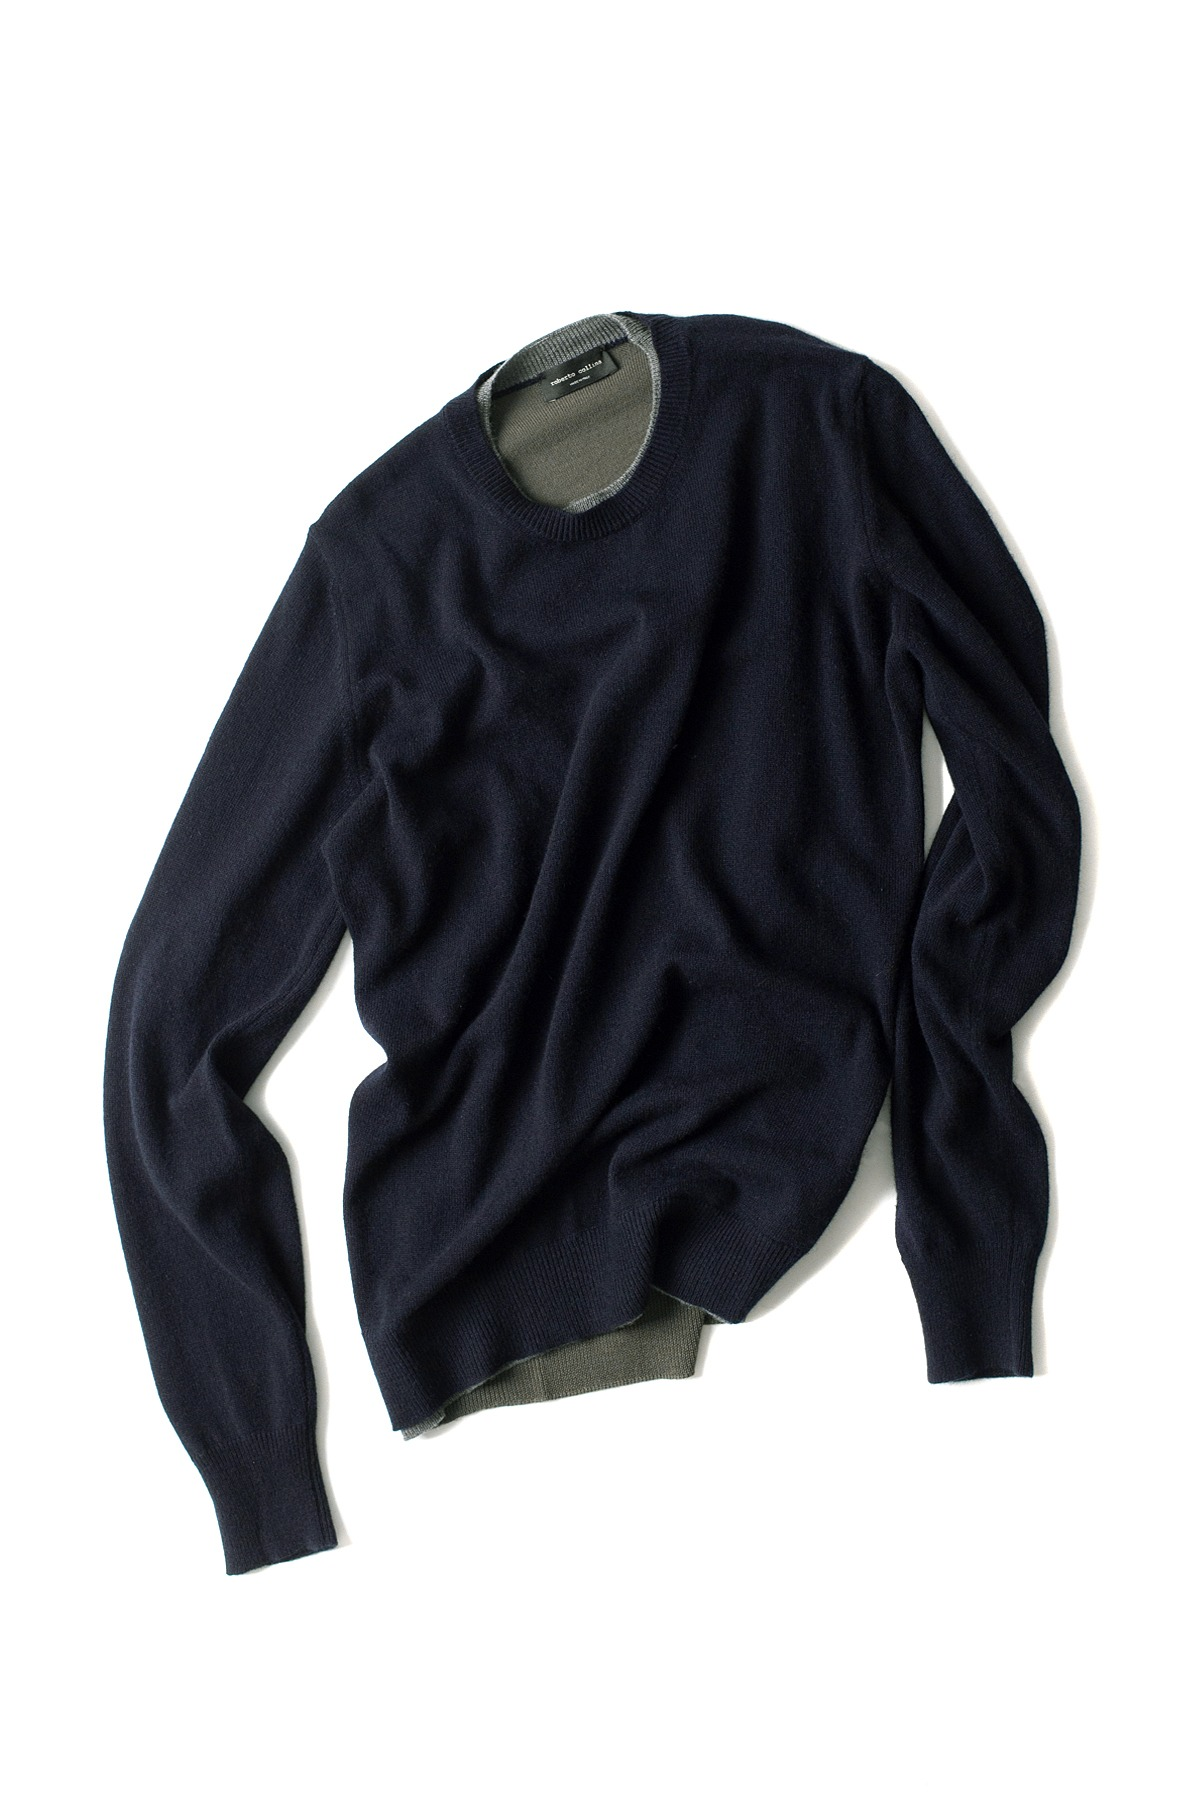 roberto collina : L/S Knit Round Neck Sweater (Navy)